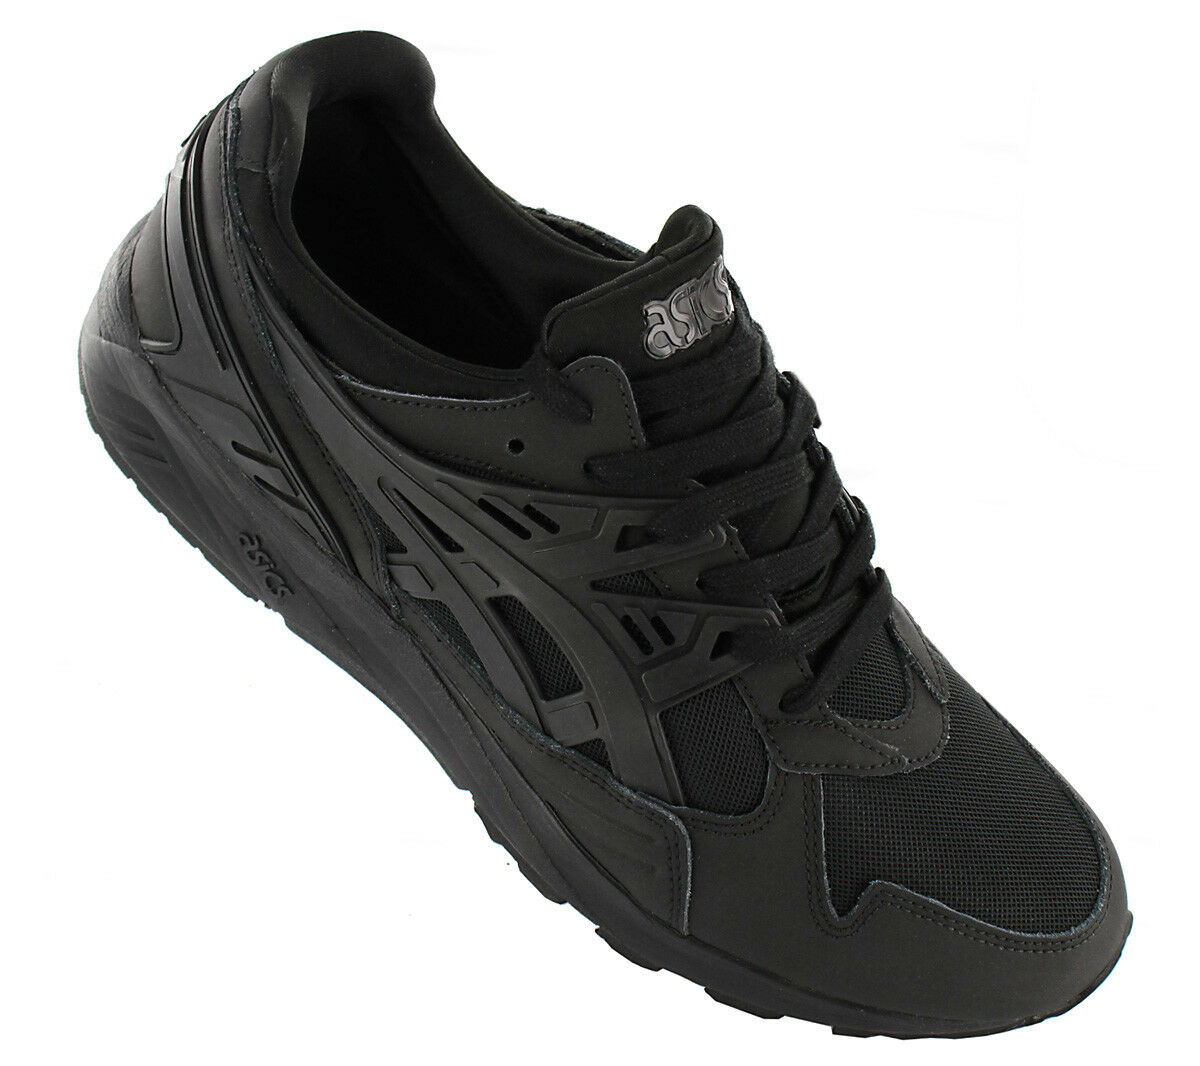 NEW Asics Gel-Kayano Trainer HN7J3-9090 Men''s shoes Trainers Sneakers SALE